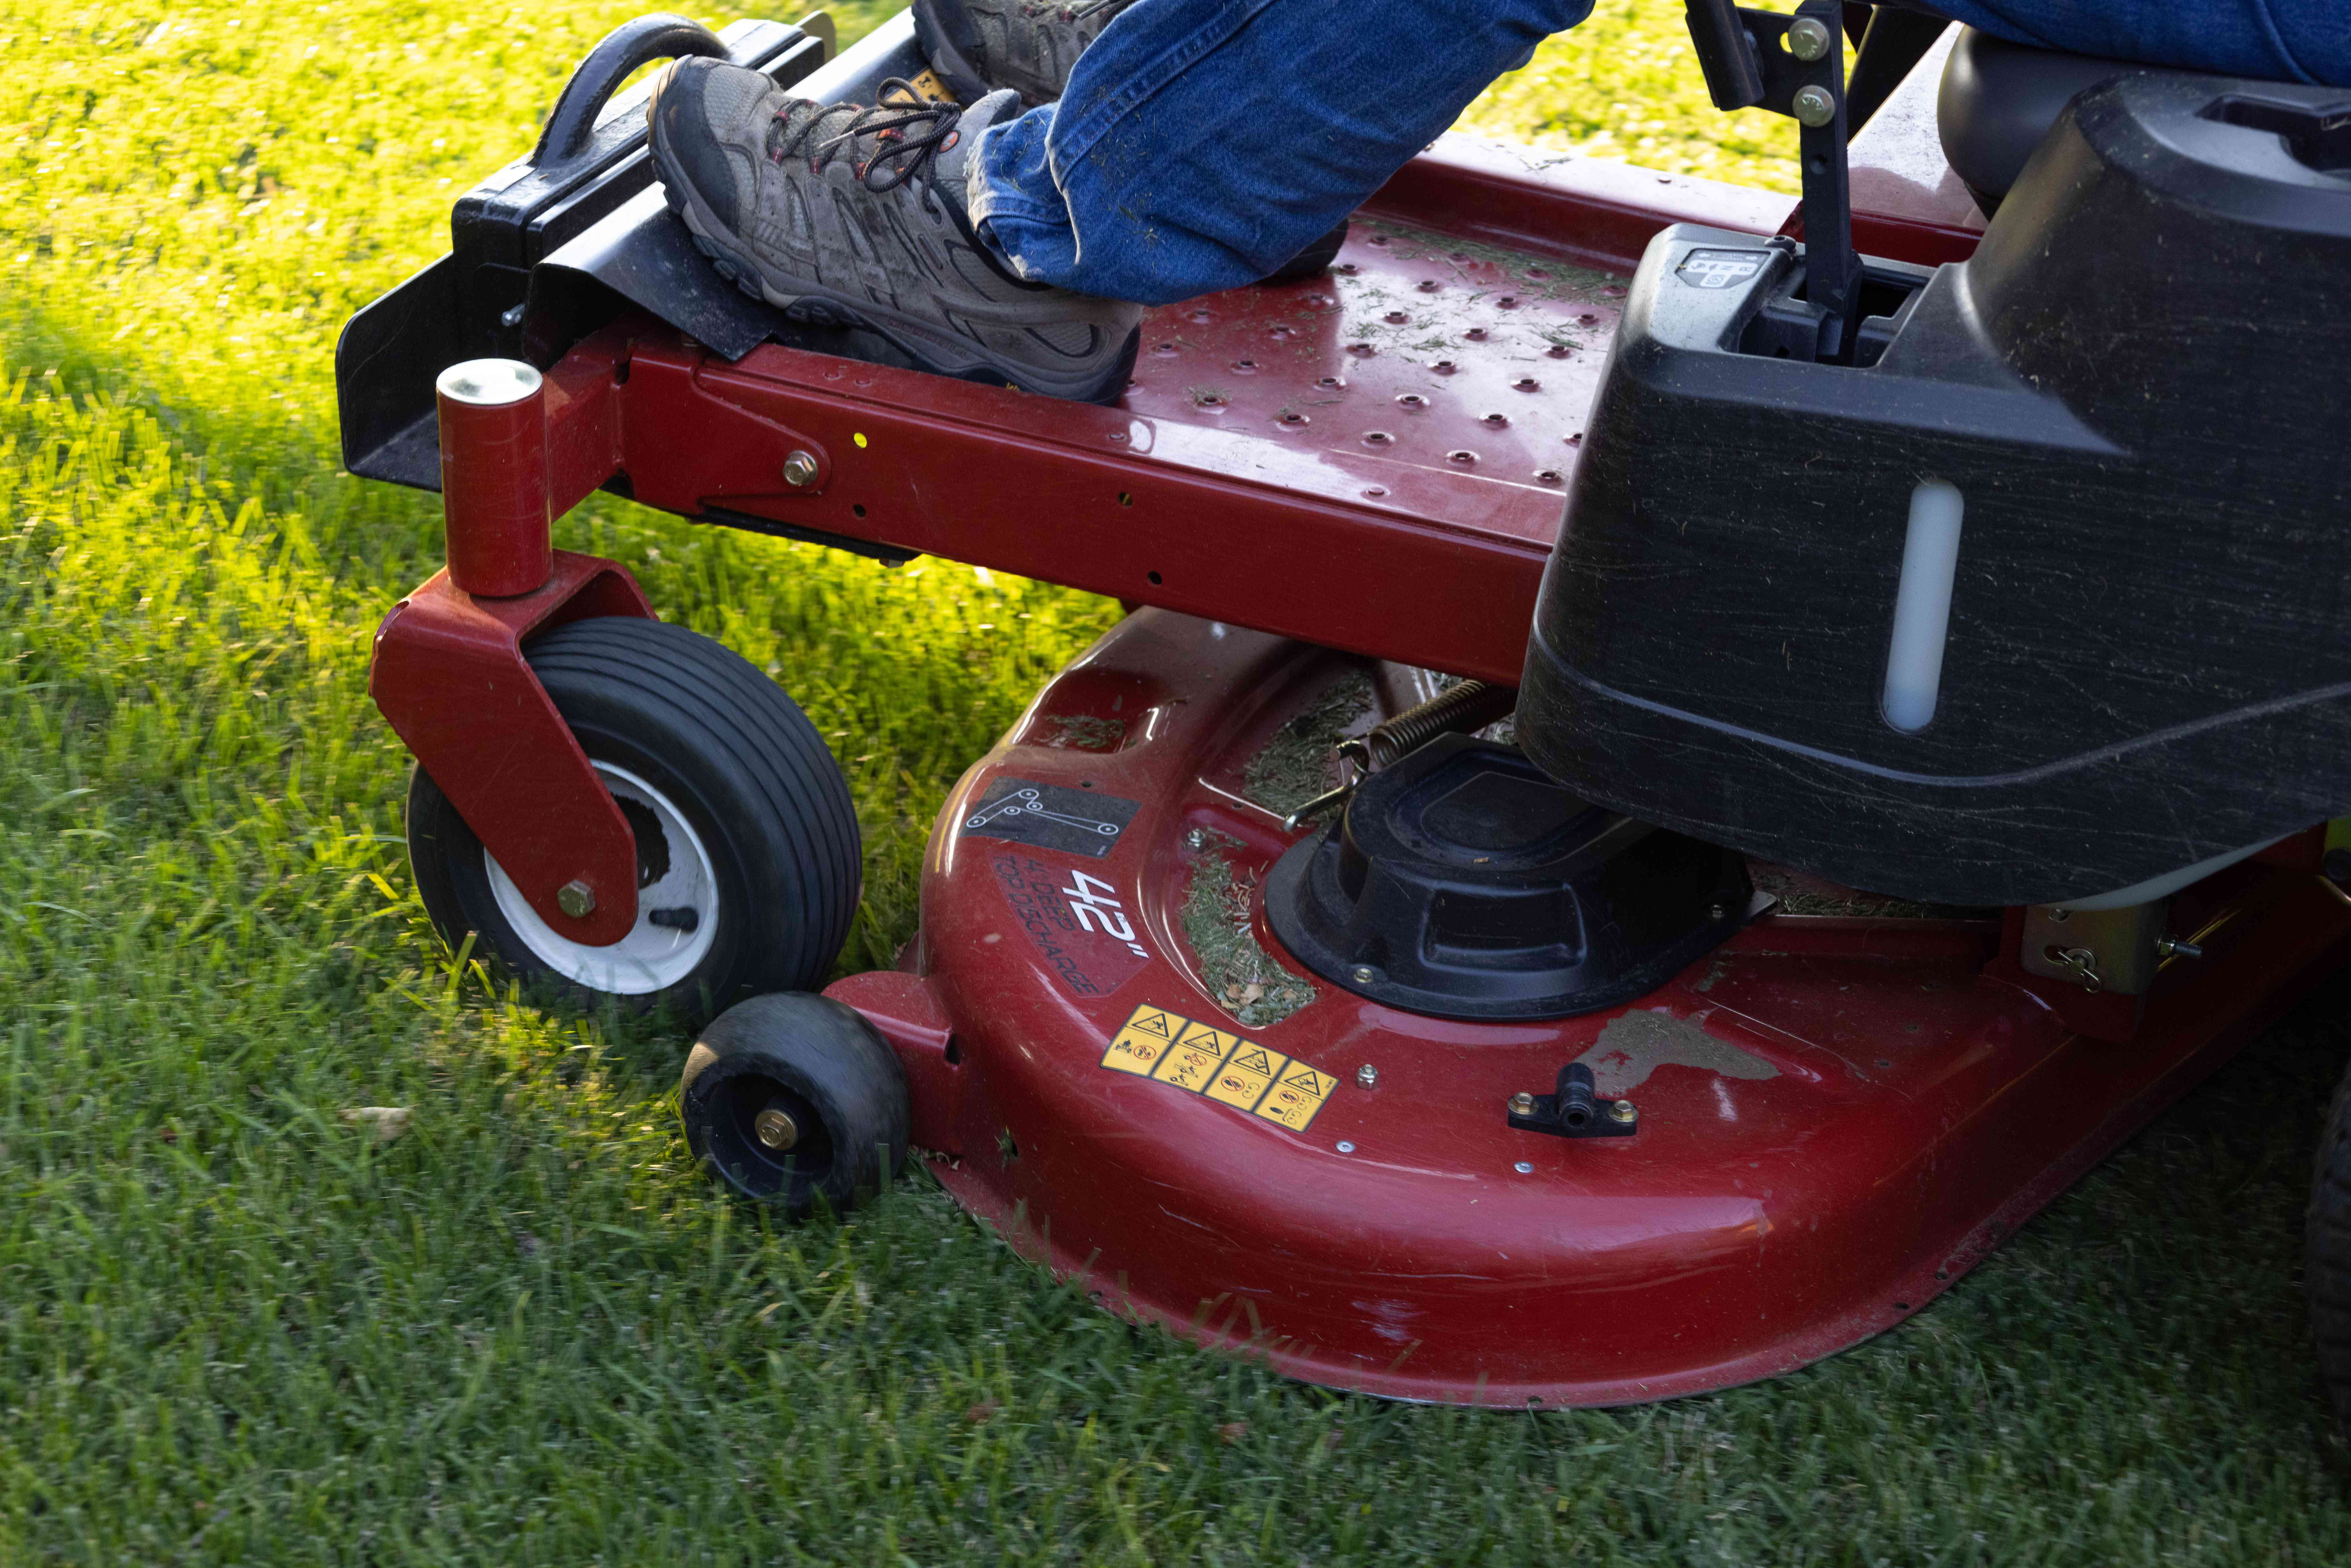 man uses red riding lawn mower to cut lawn grass closely